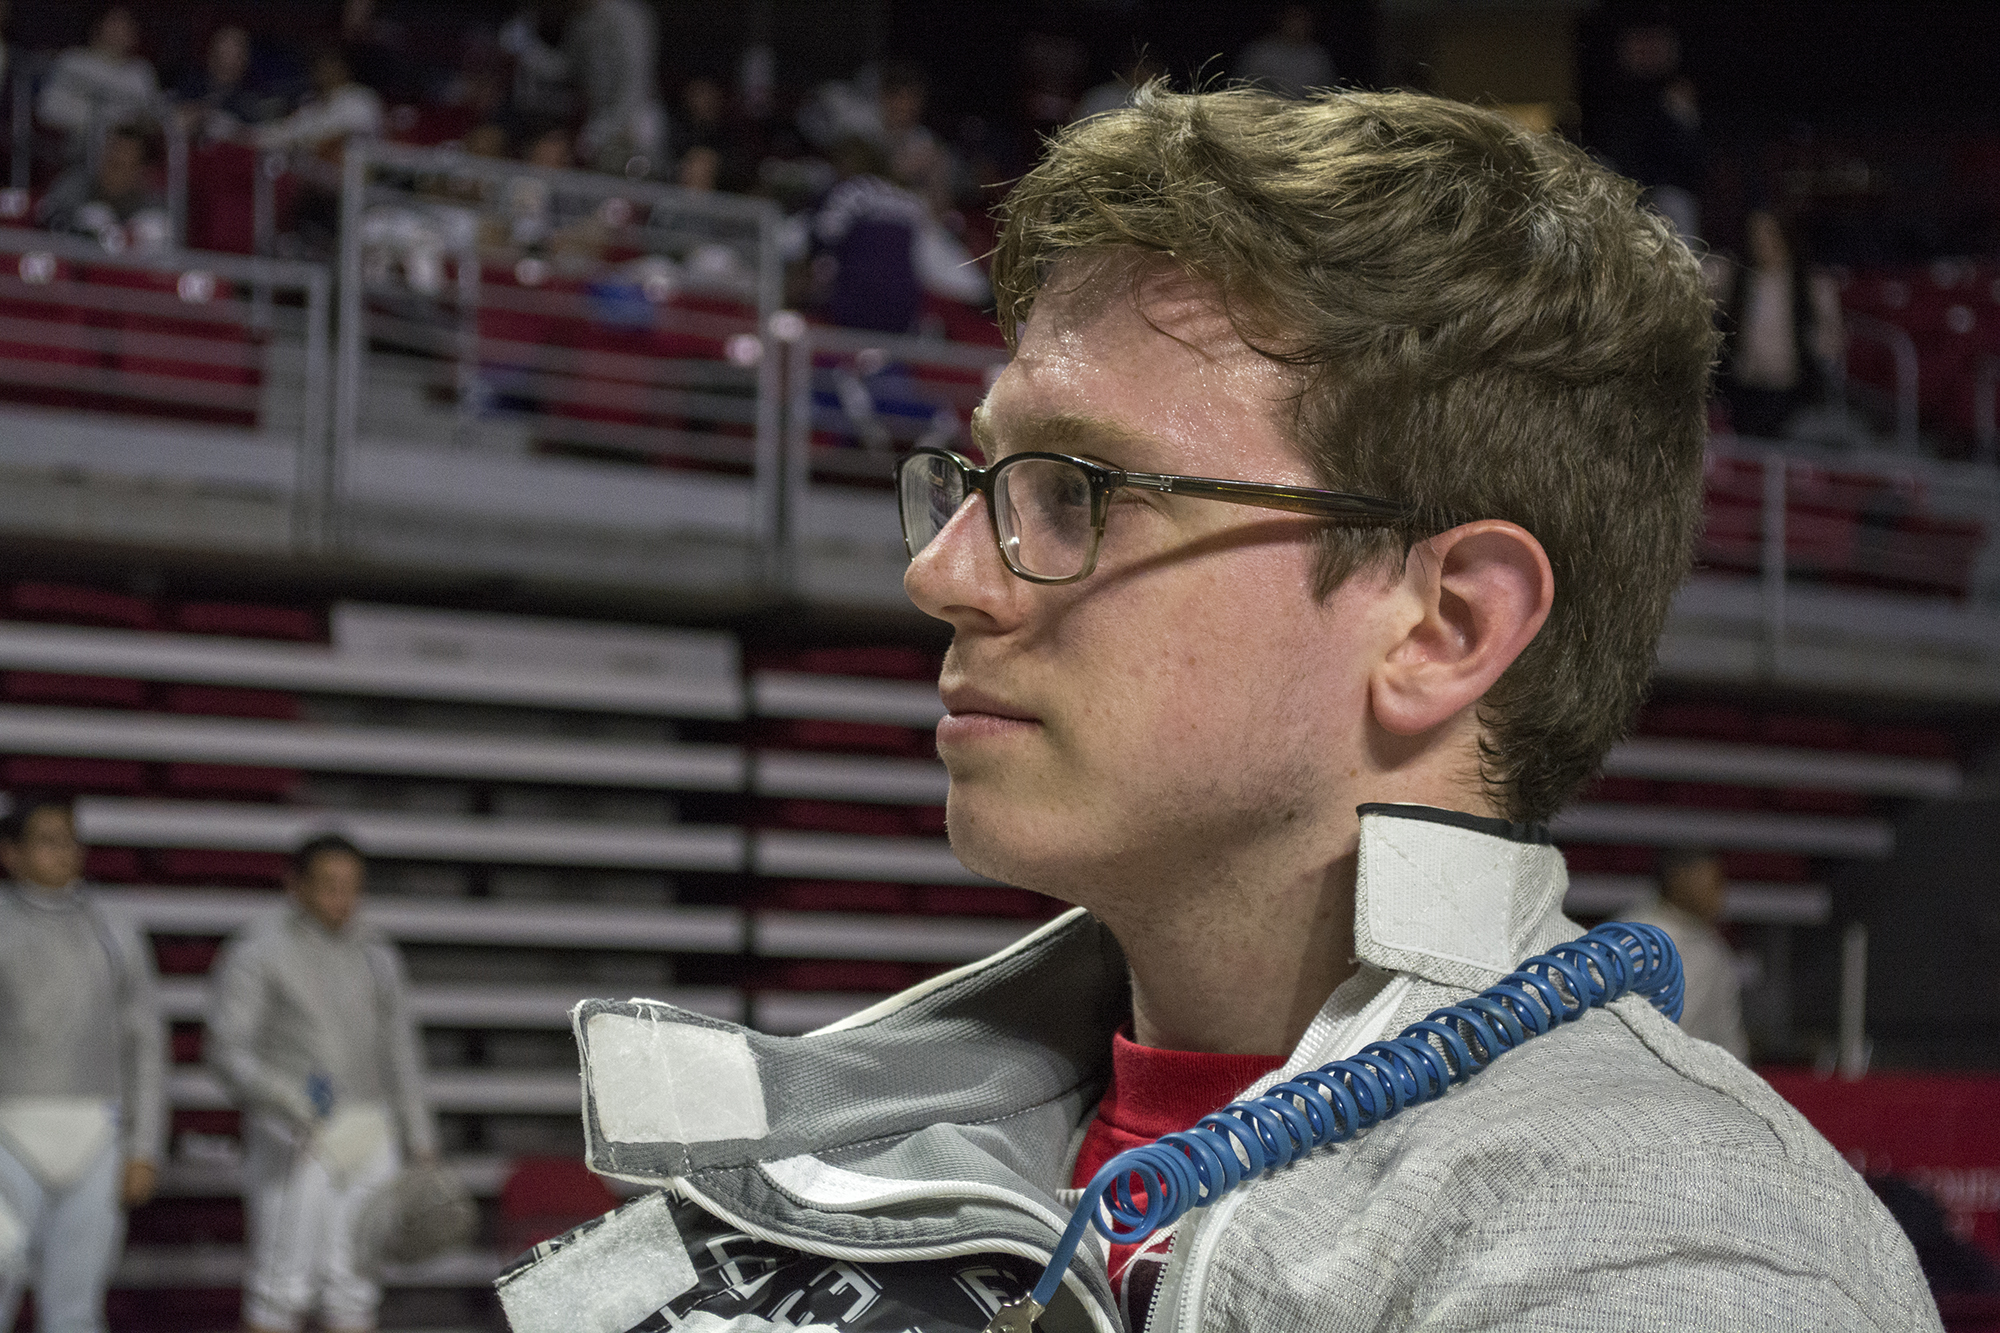 Jeremy Allen, above, serves as both a coach and competes as a senior sabre fencer for the Stony Brook Fencing club.  Allen ranked the highest out of the Stony Brook competitors with a ranking of 29th out of 72 in the Men's Sabre division. CHRISTOPHER CAMERON/THE STATESMAN